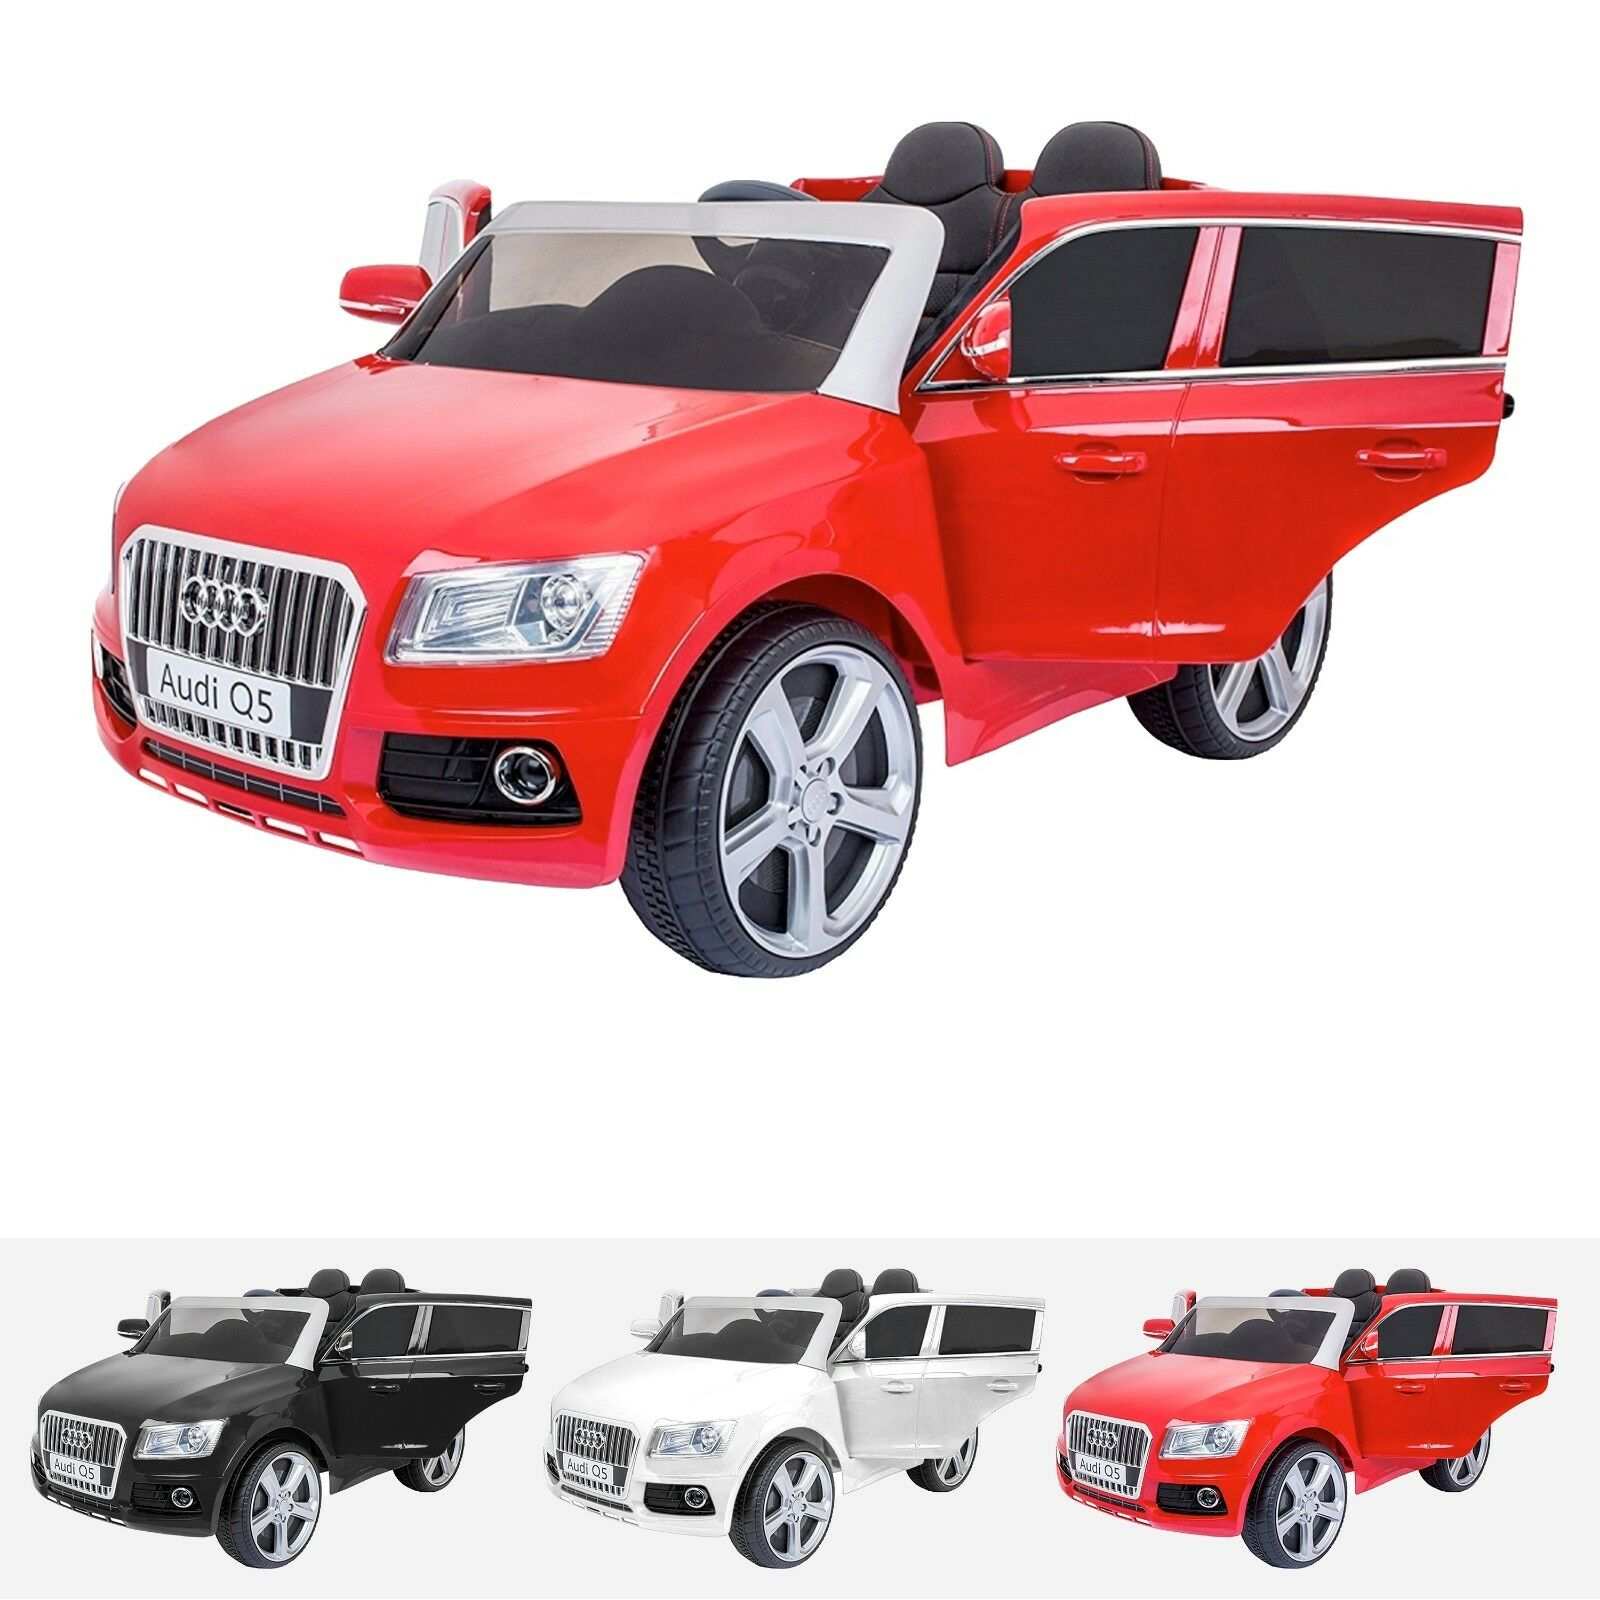 Kids Licensed Audi Q5 S Line 12V Electric Motor Battery Battery Battery Operated Ride On Car b87281